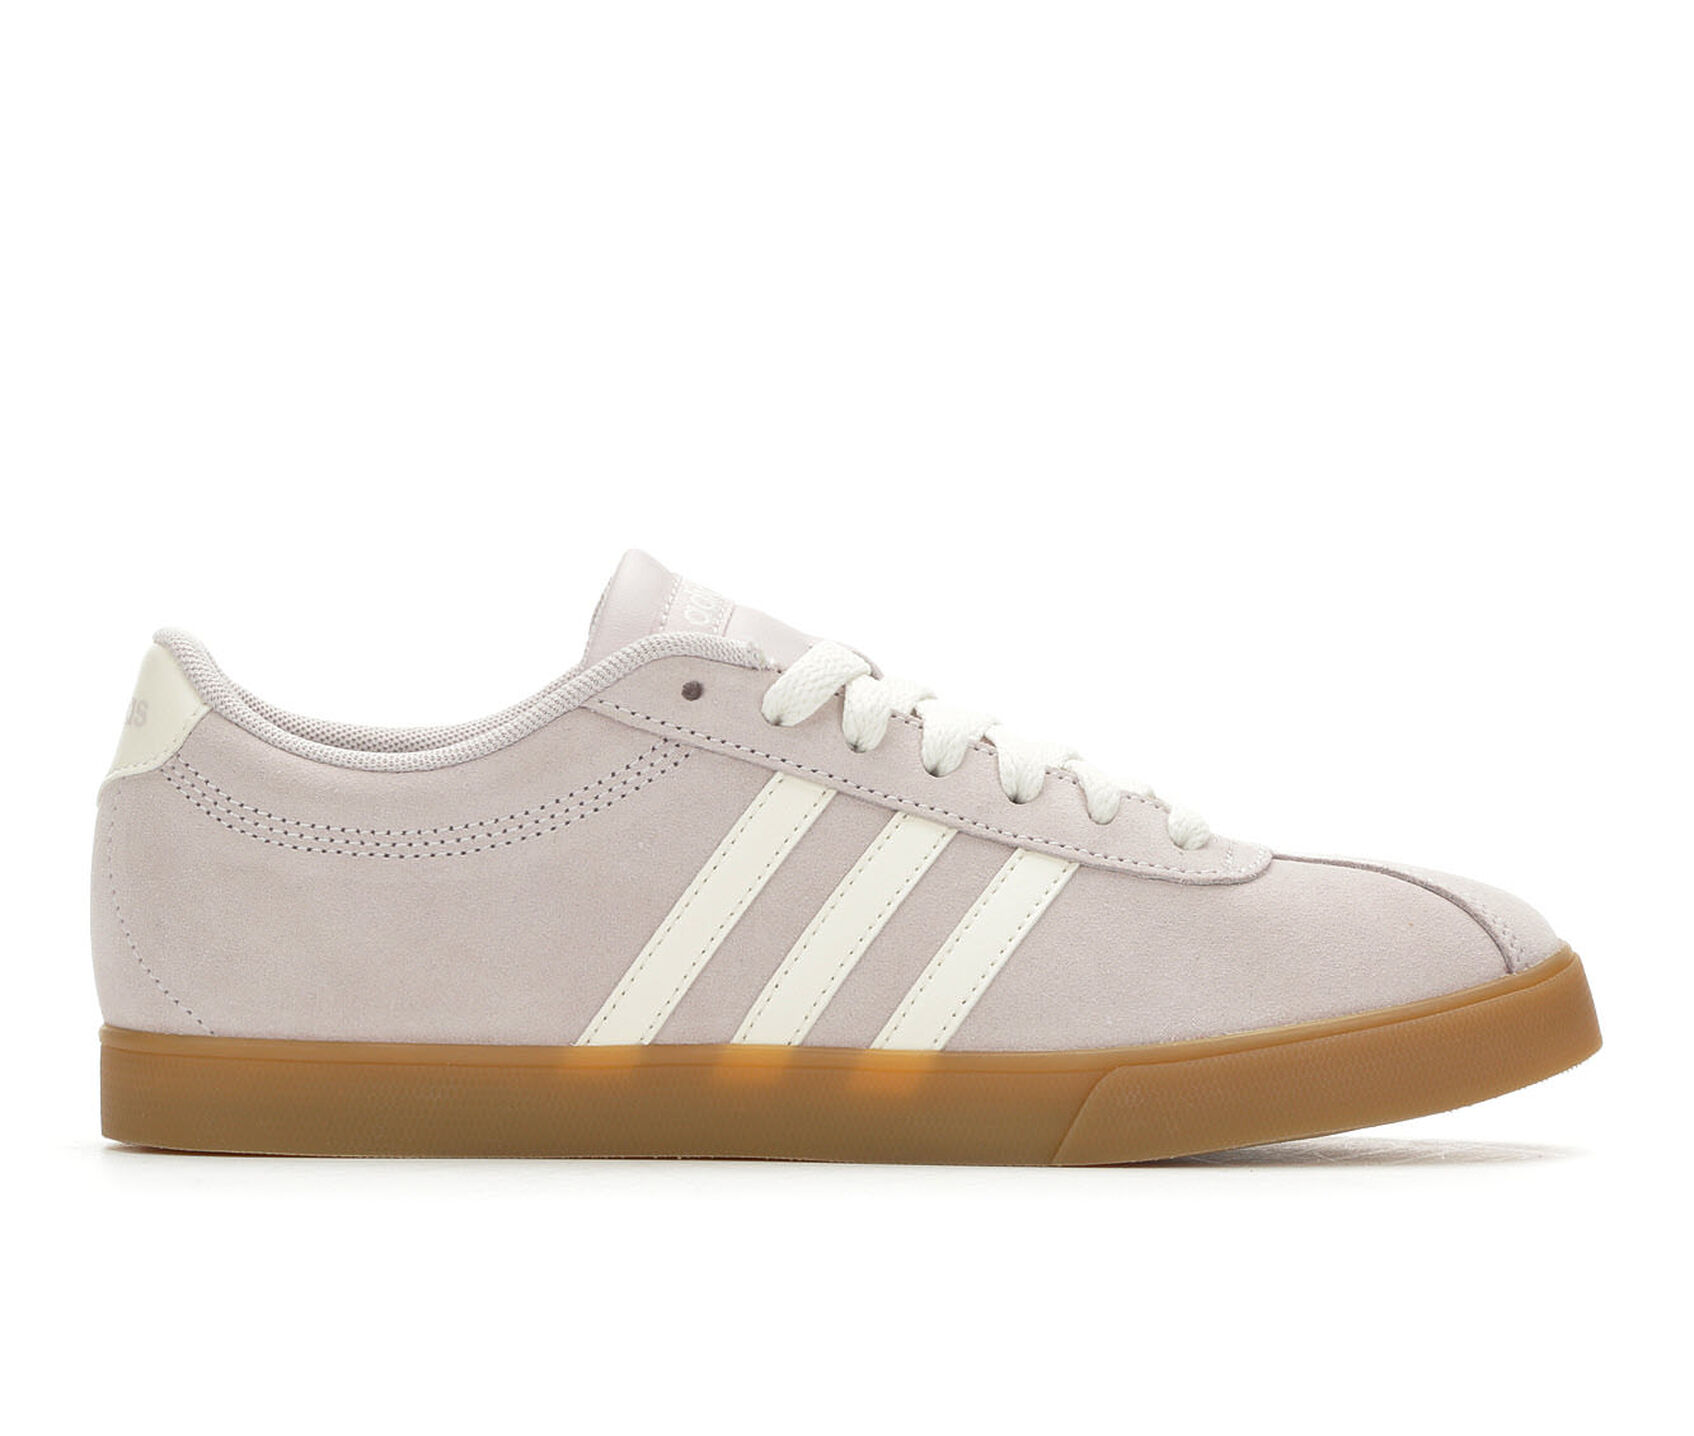 ce360520b4 Women's Adidas Courtset Sneakers | Shoe Carnival